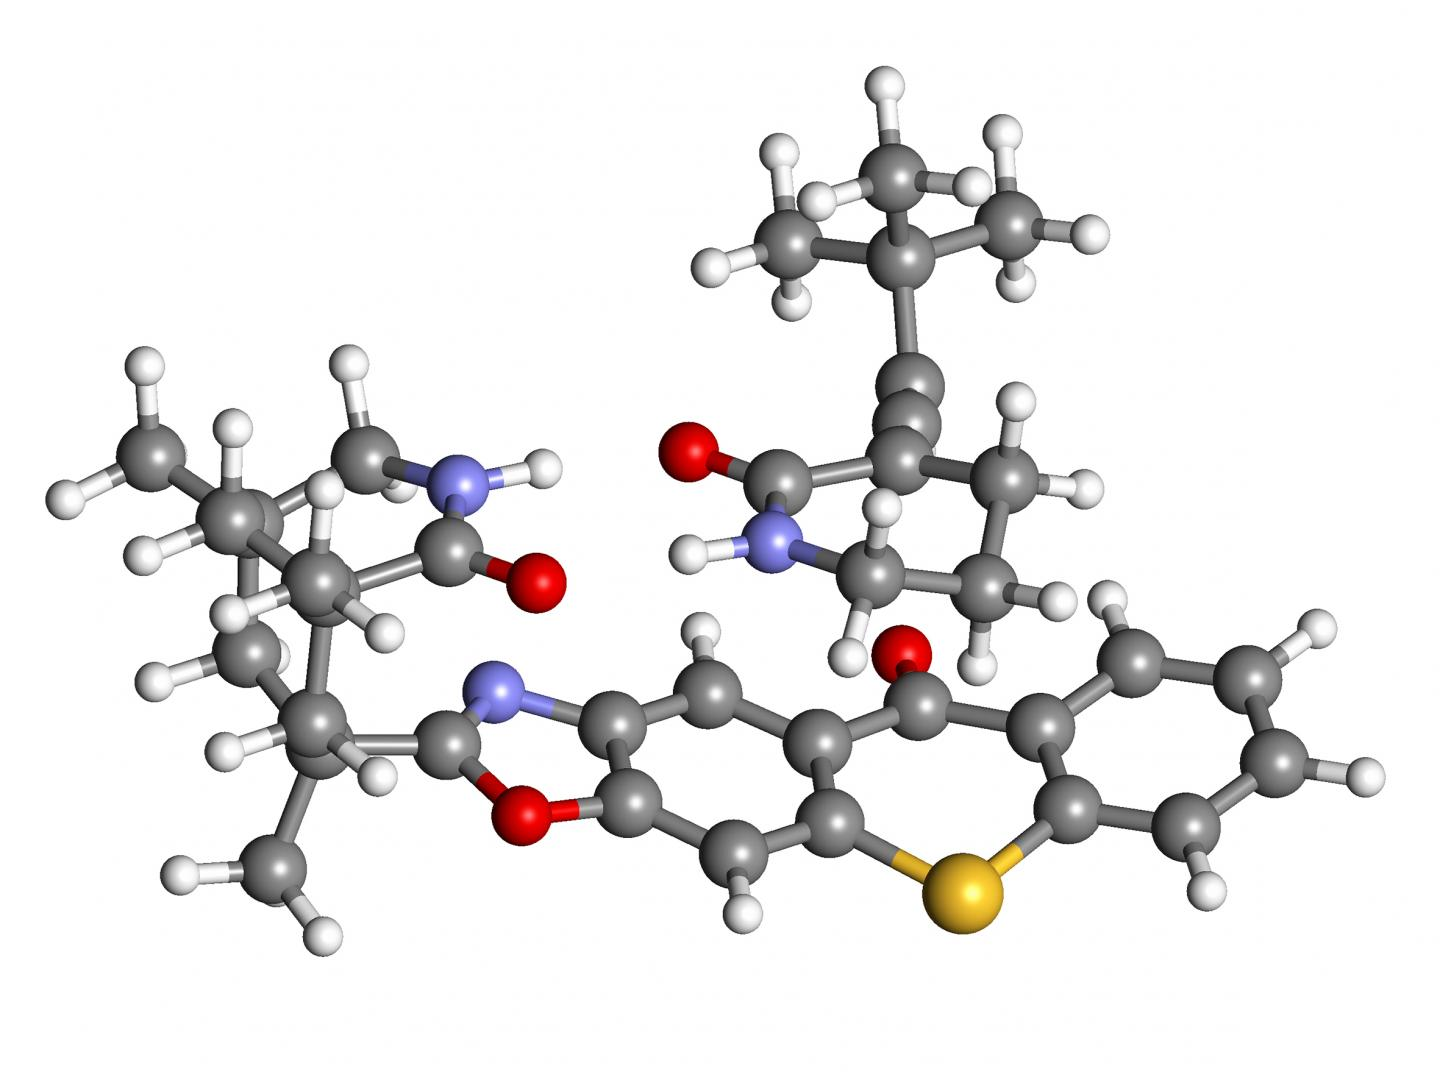 Photochemical Deracemization of Chiral Compounds Assists